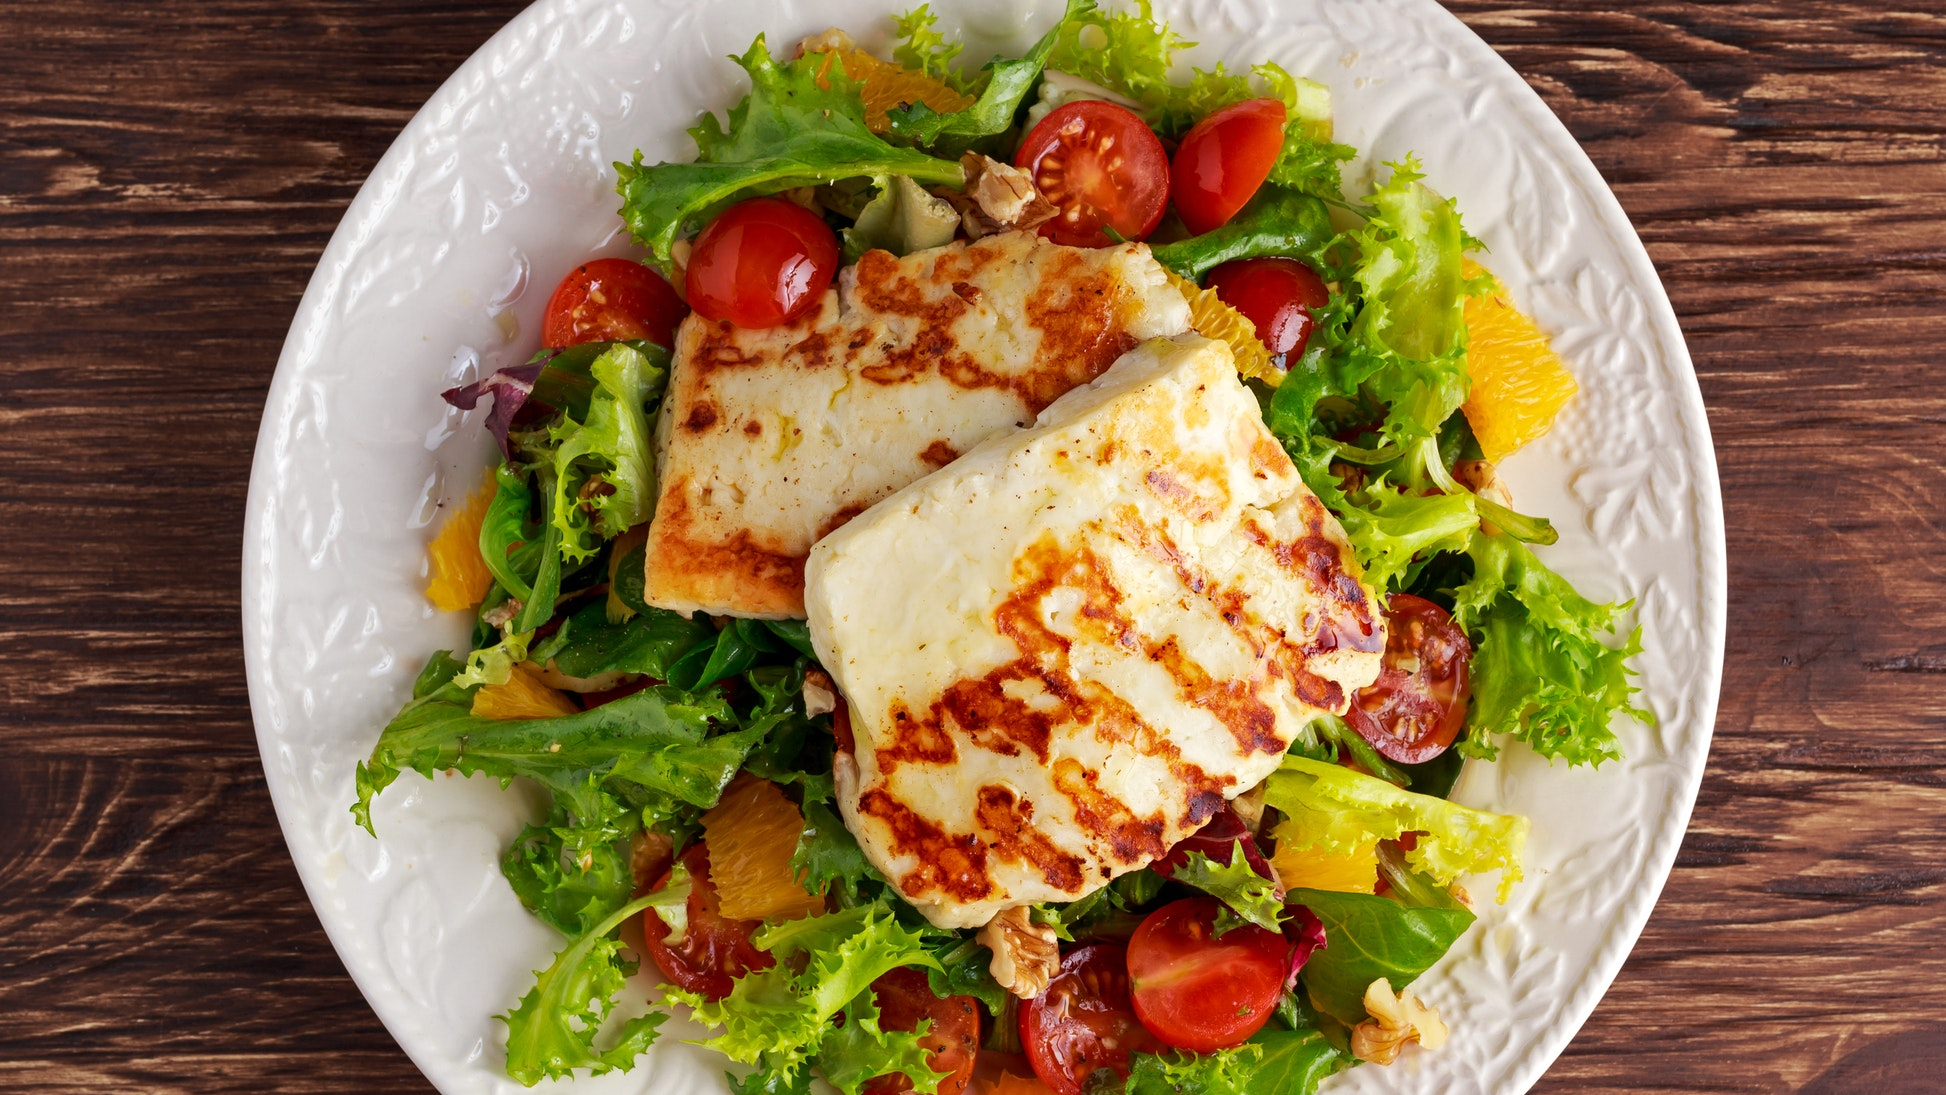 healthy drink eating options recipes innovative foods halloumi eat dinner winter easy bt brink shortage britain during diet snacks warm